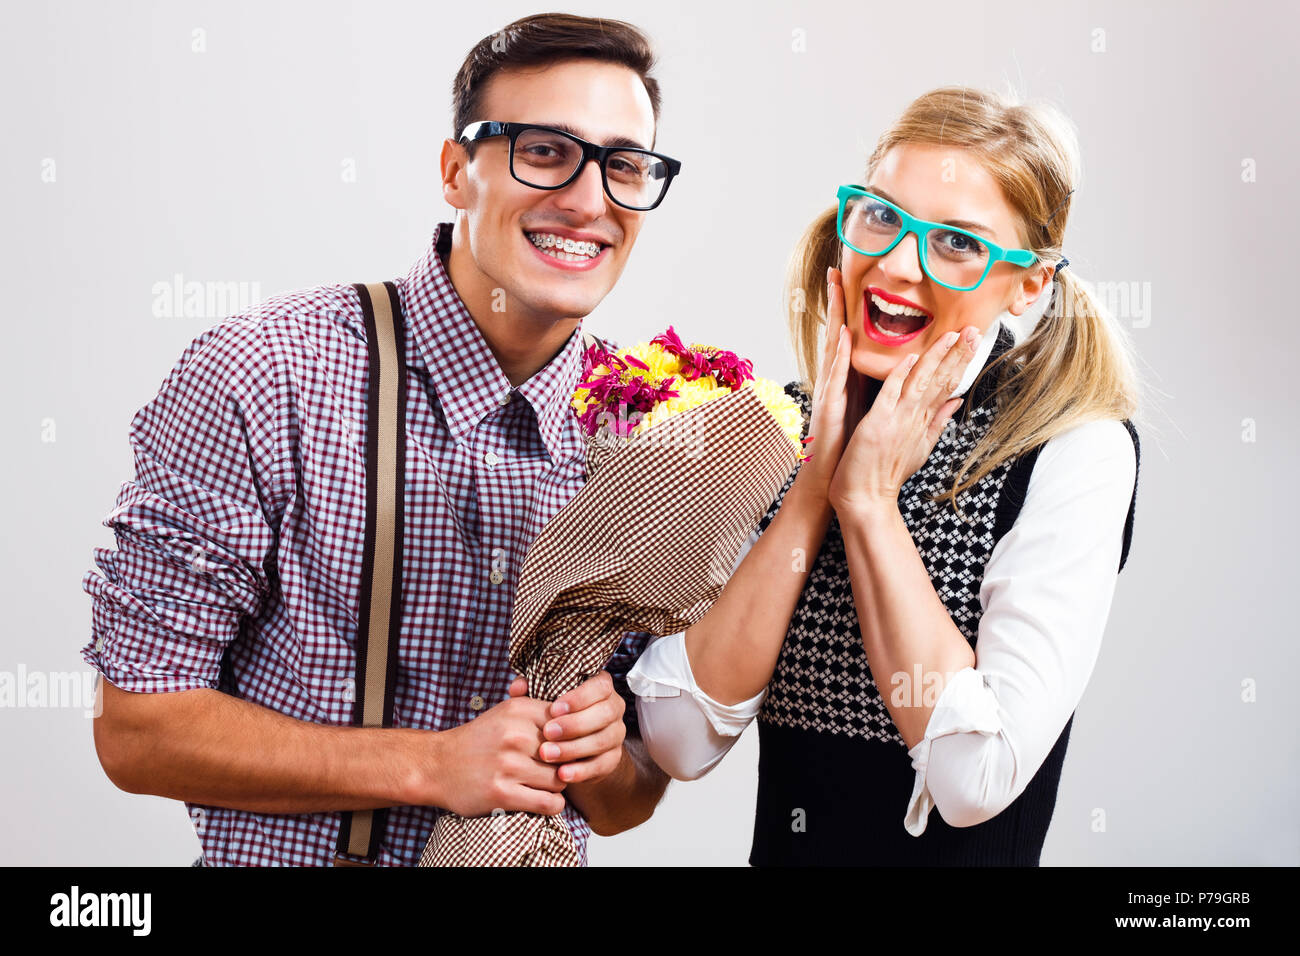 Nerdy man is giving flowers to his nerdy lady. - Stock Image